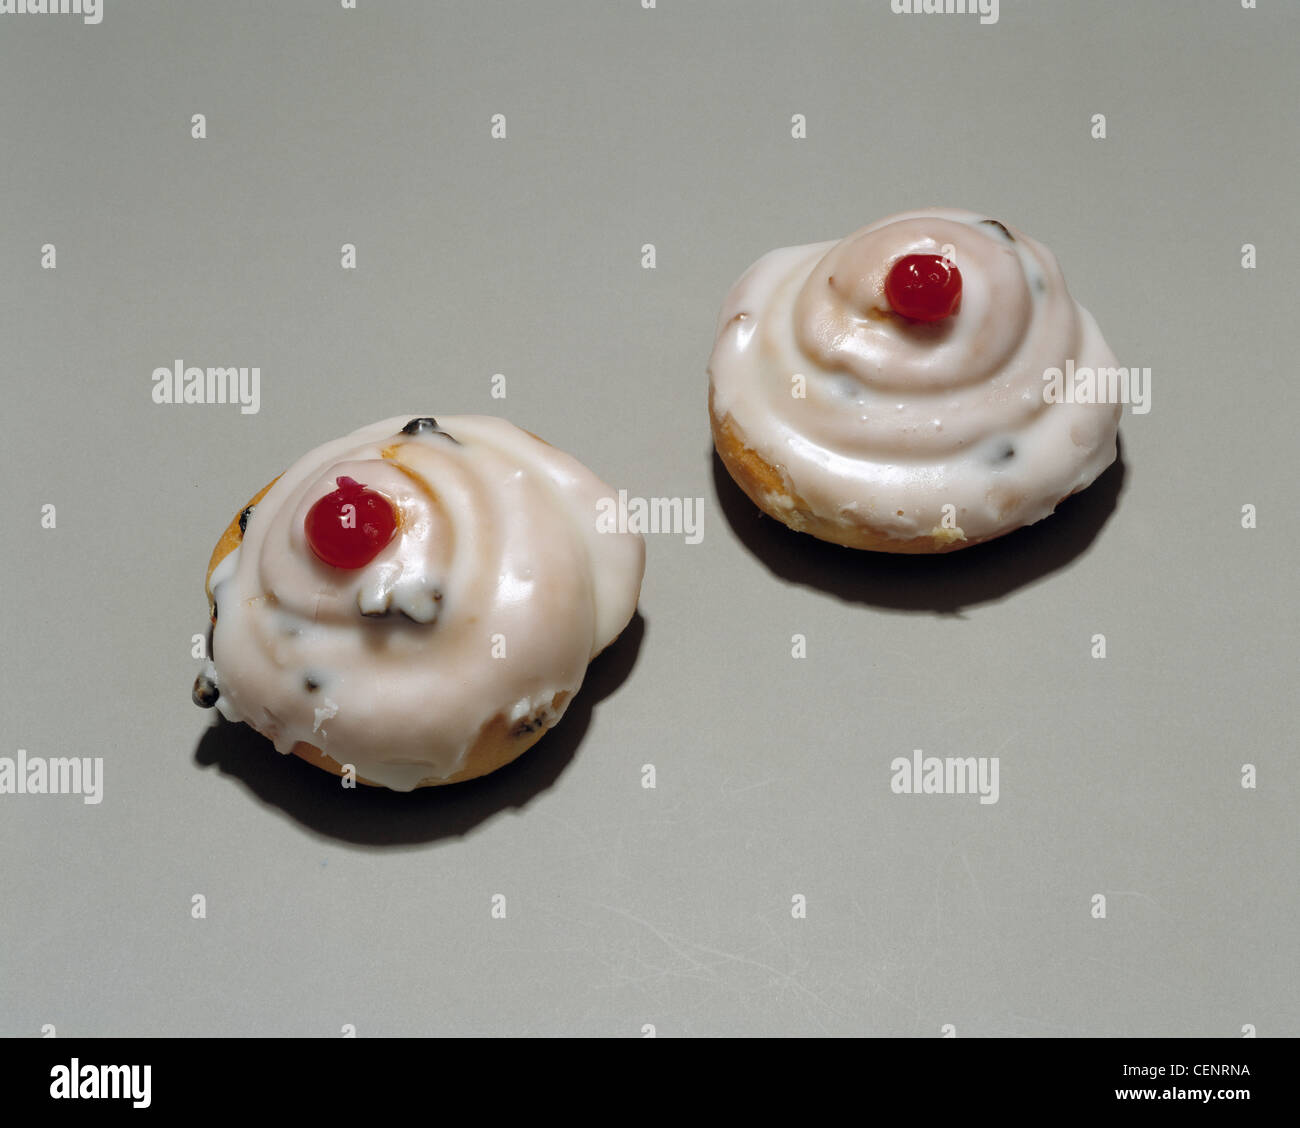 Two cherry buns with a grey background - Stock Image